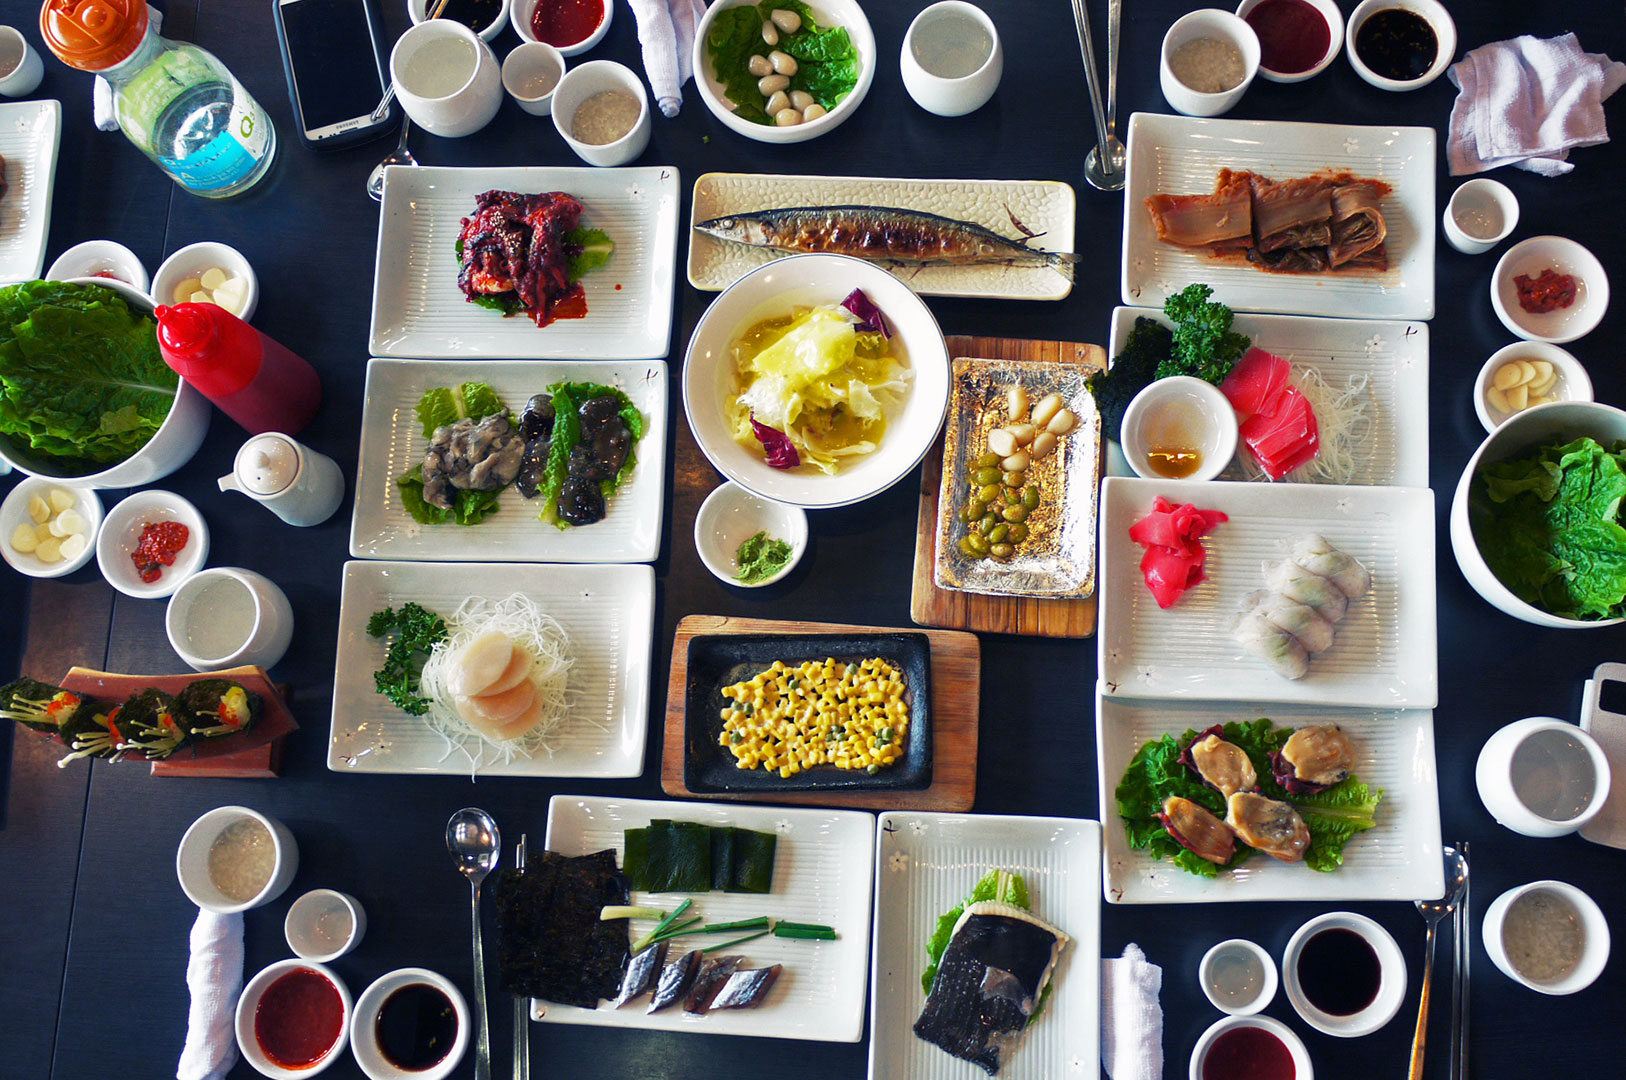 10 amazing korean dishes for pescatarians wandering on travel blog 10 amazing korean dishes for pescatarians forumfinder Image collections